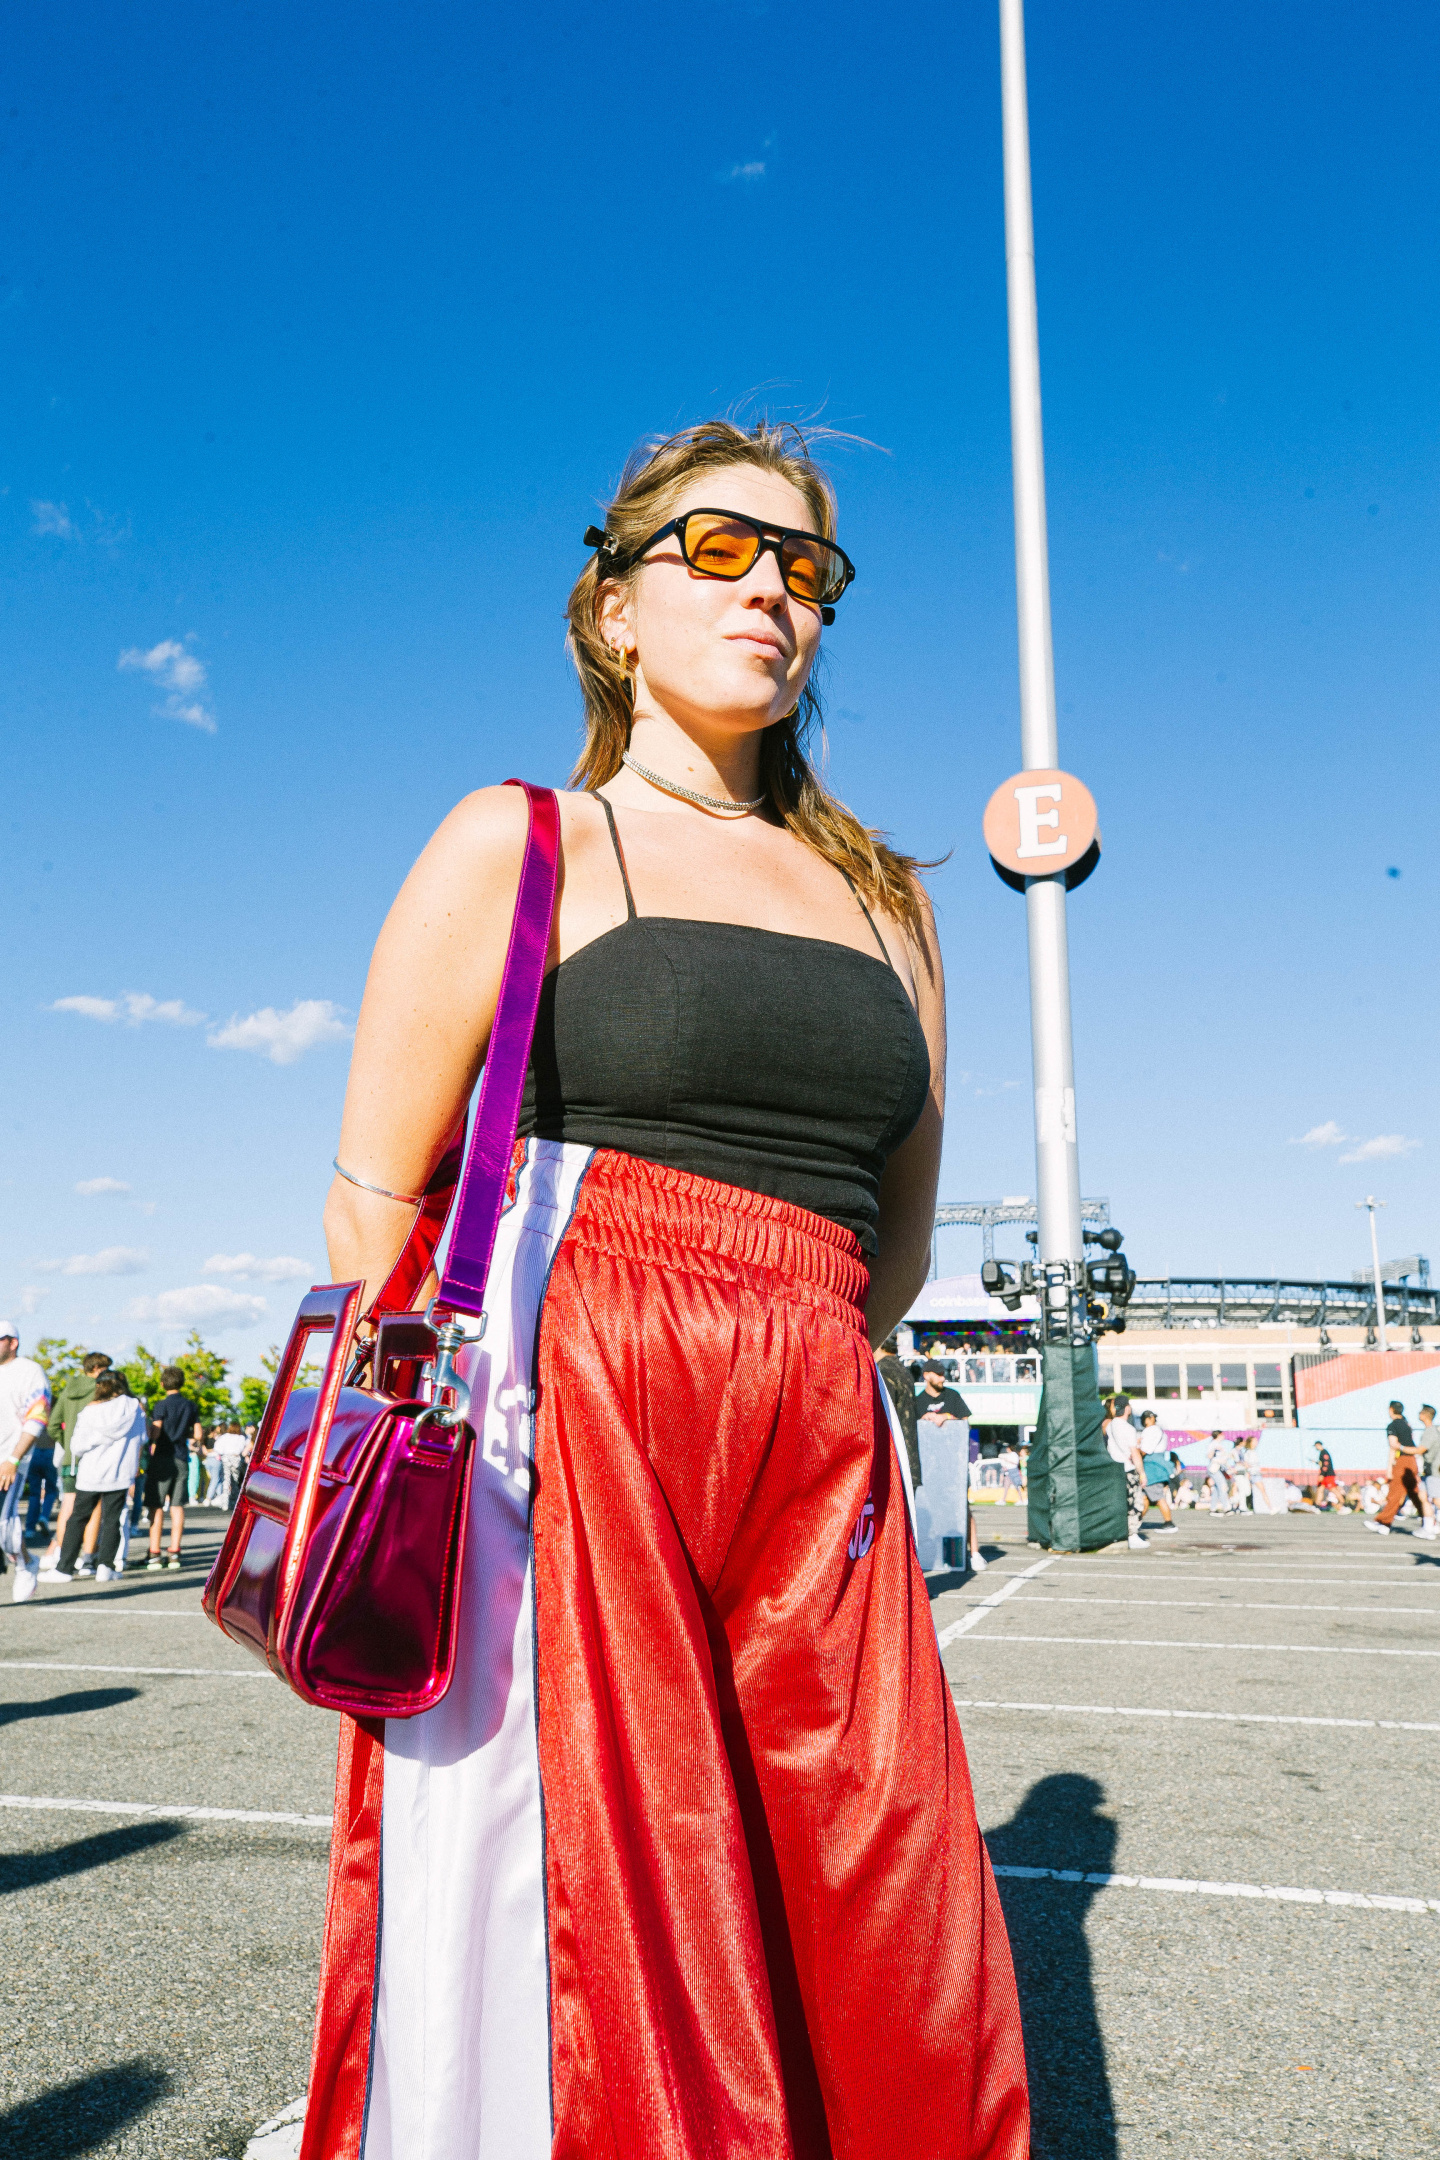 Here are the best looks from the Governors Ball 2021